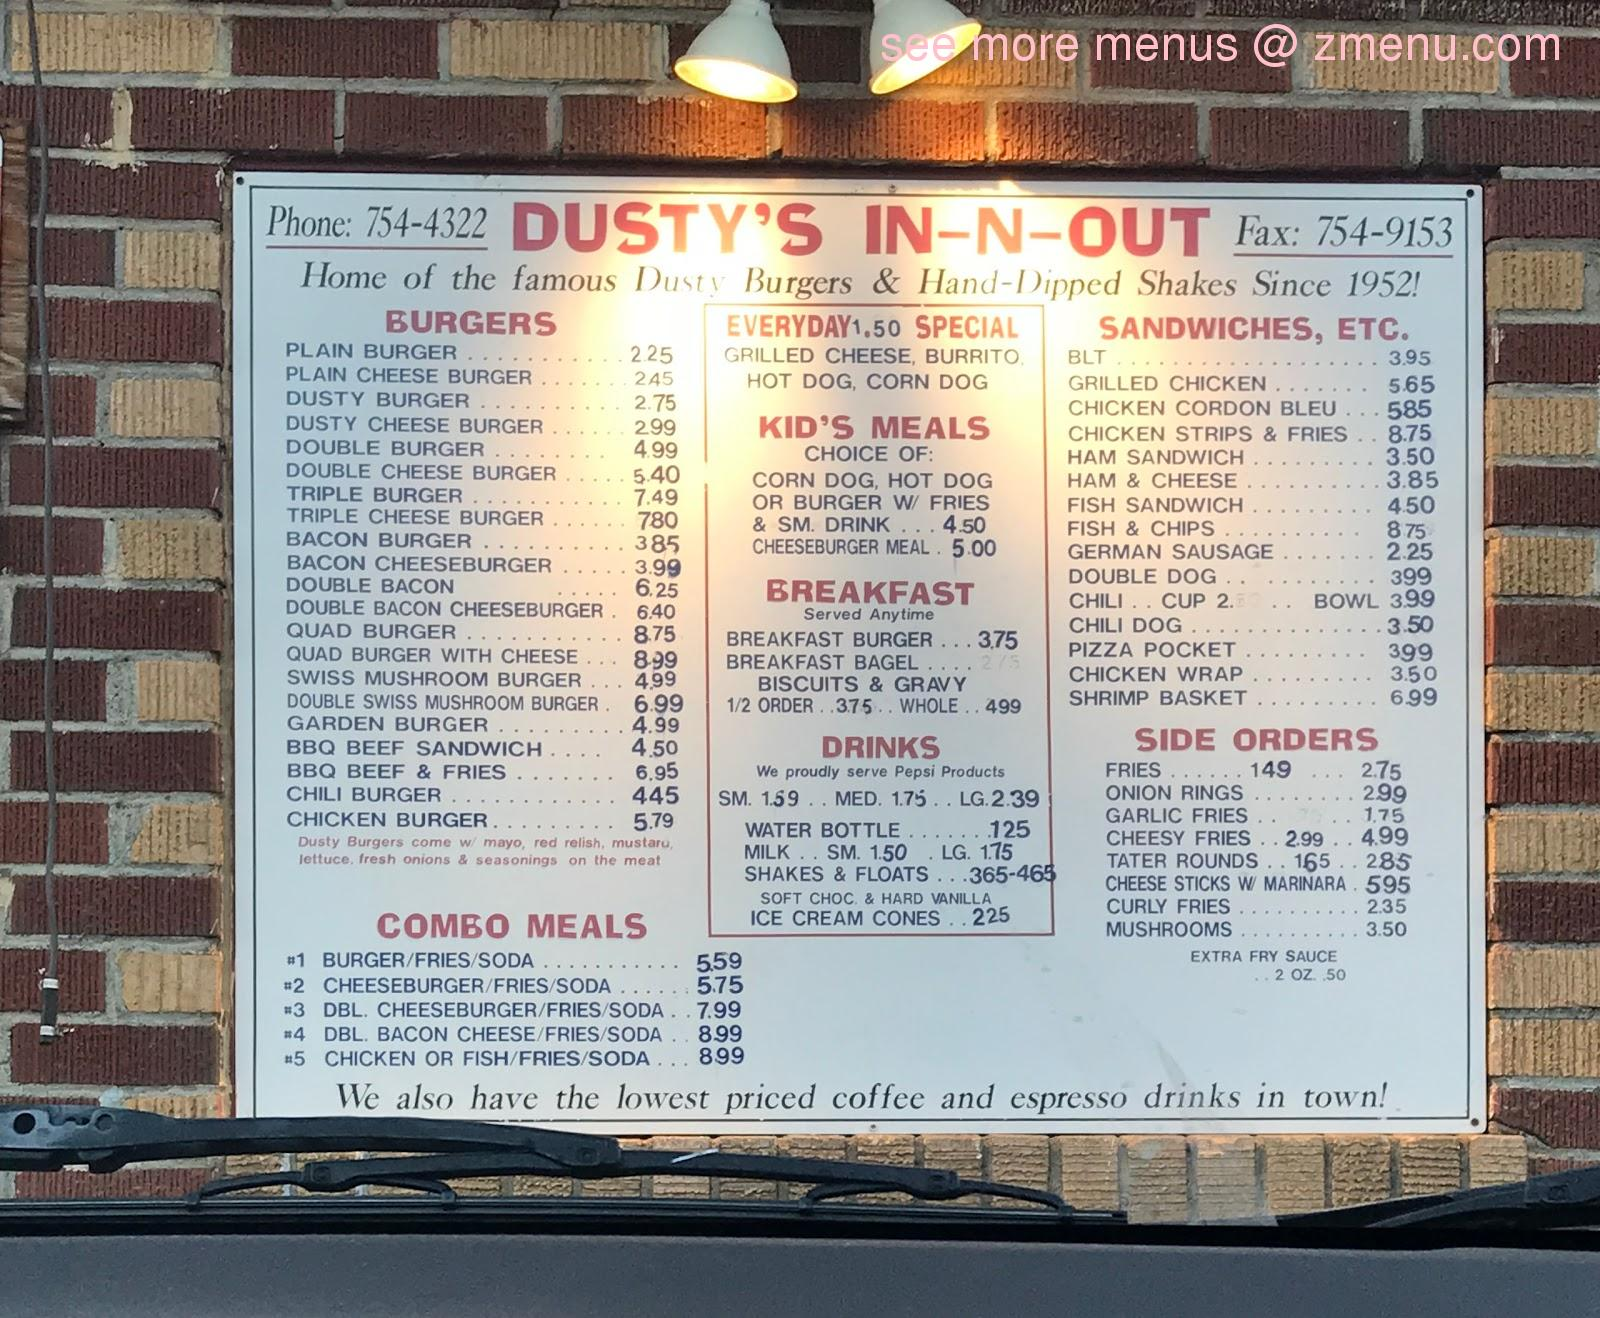 Online Menu of Dustys In-N-Out Restaurant, Ephrata